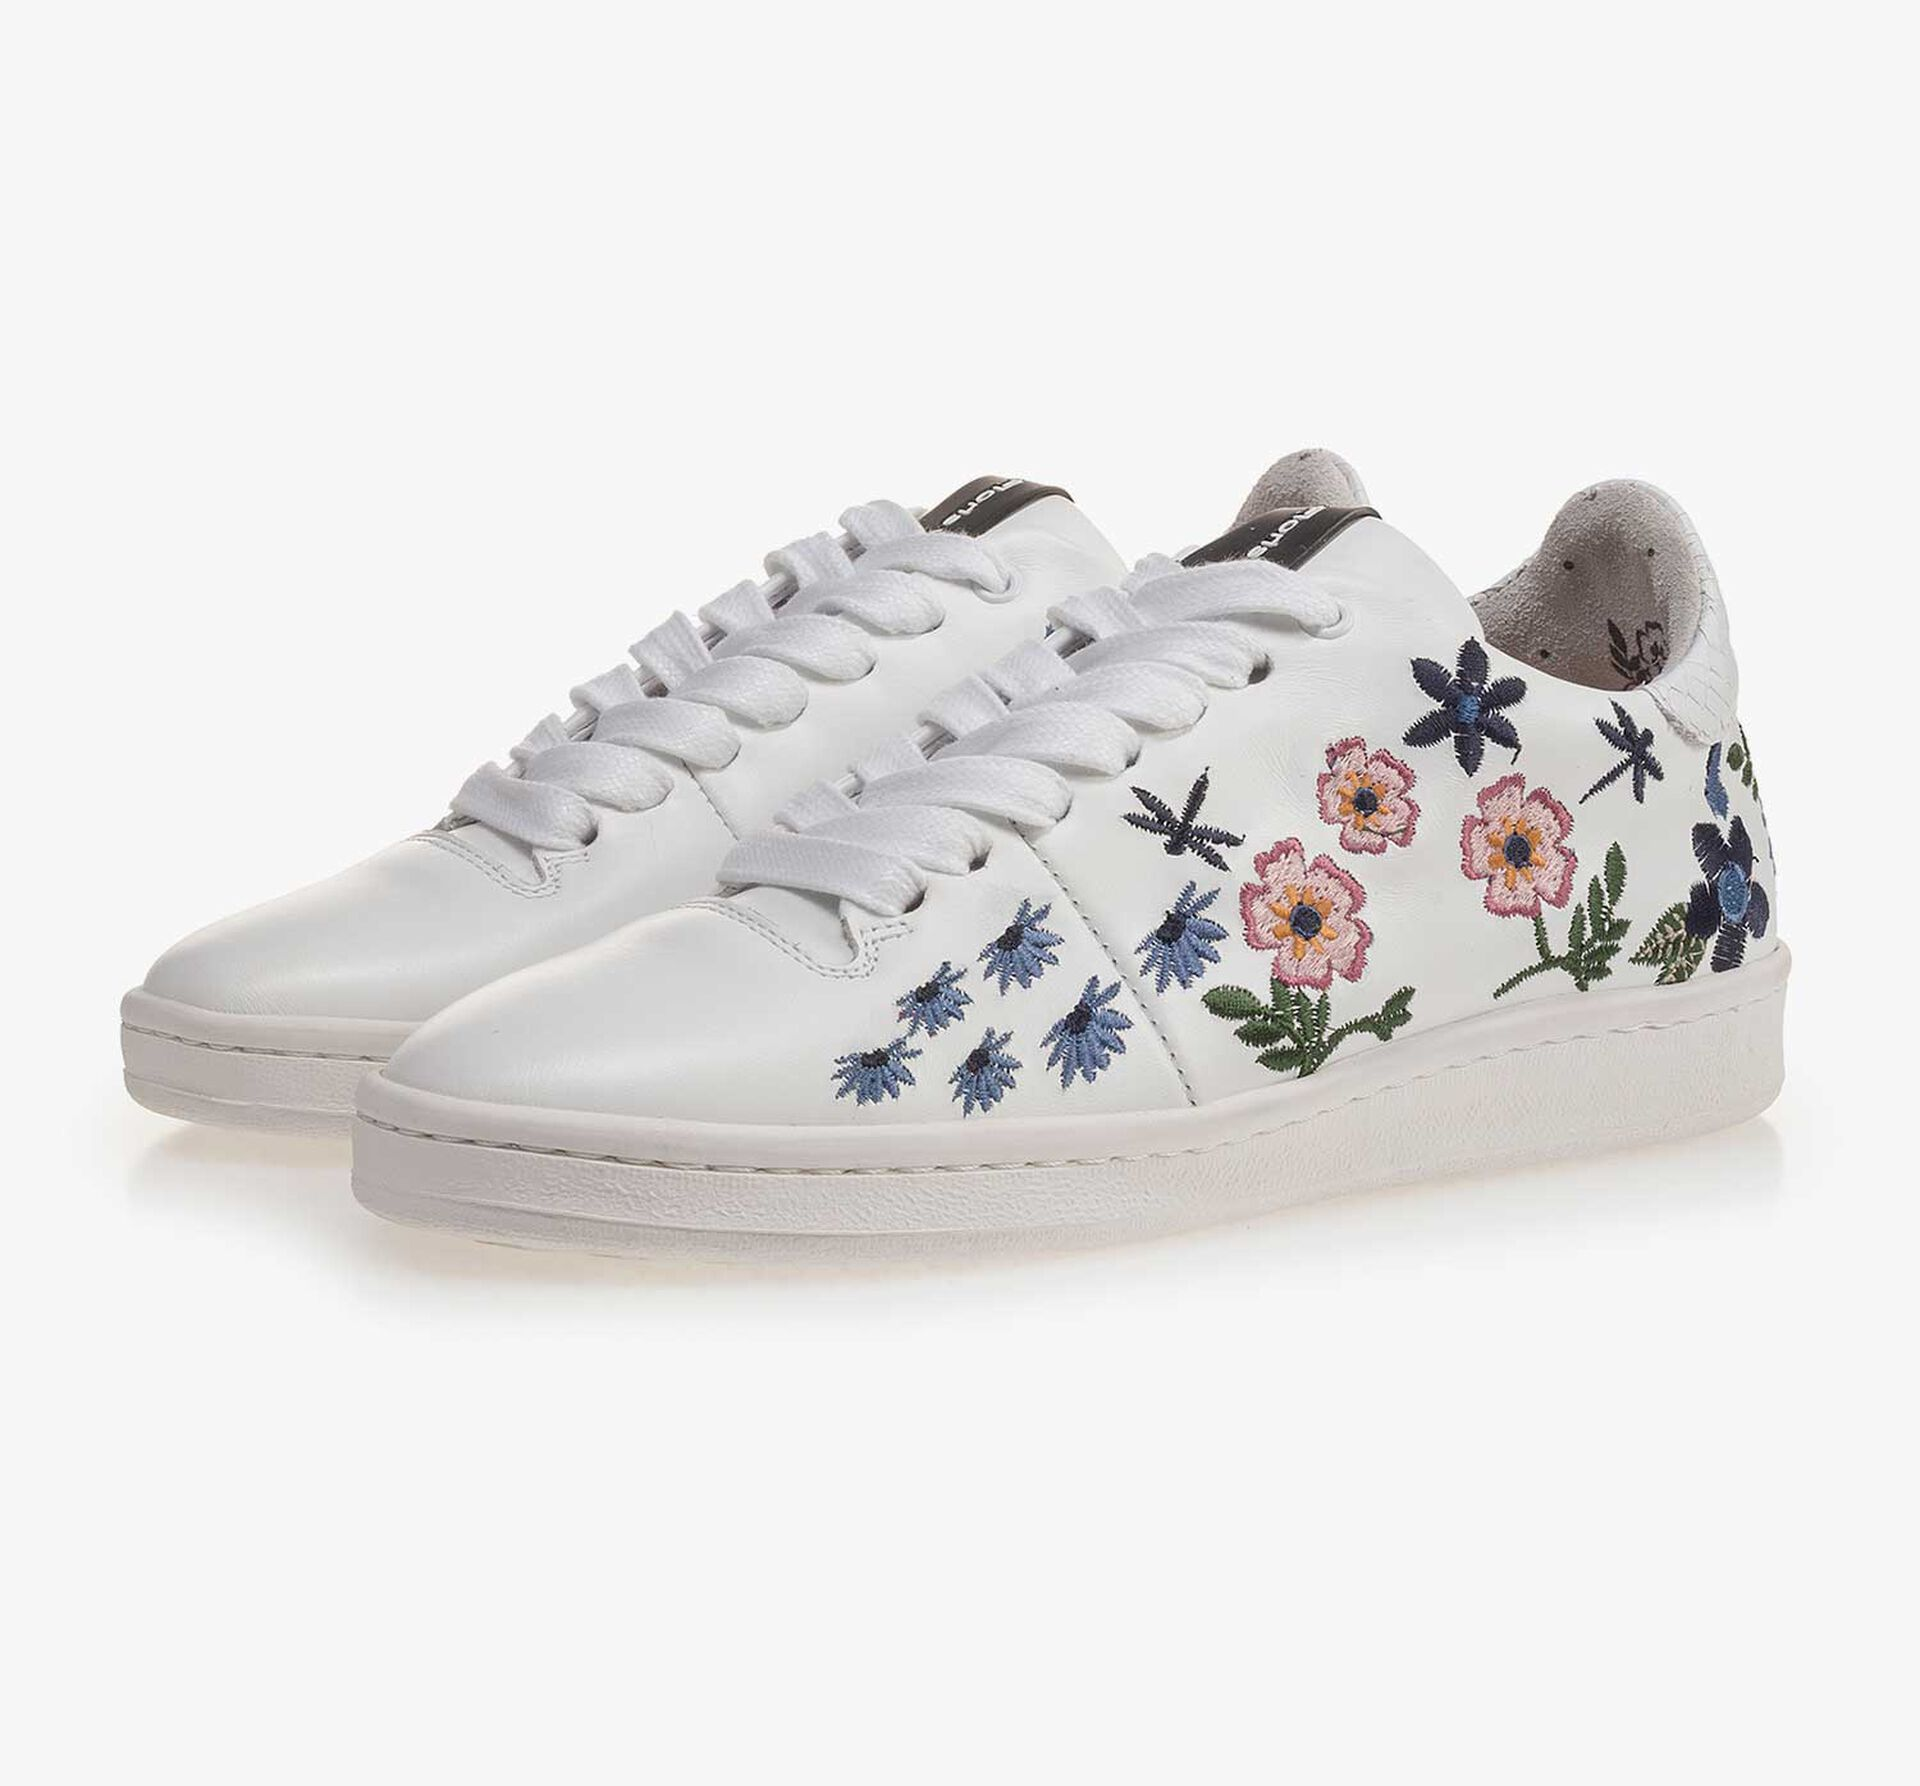 White leather sneaker with floral embroidery stitching